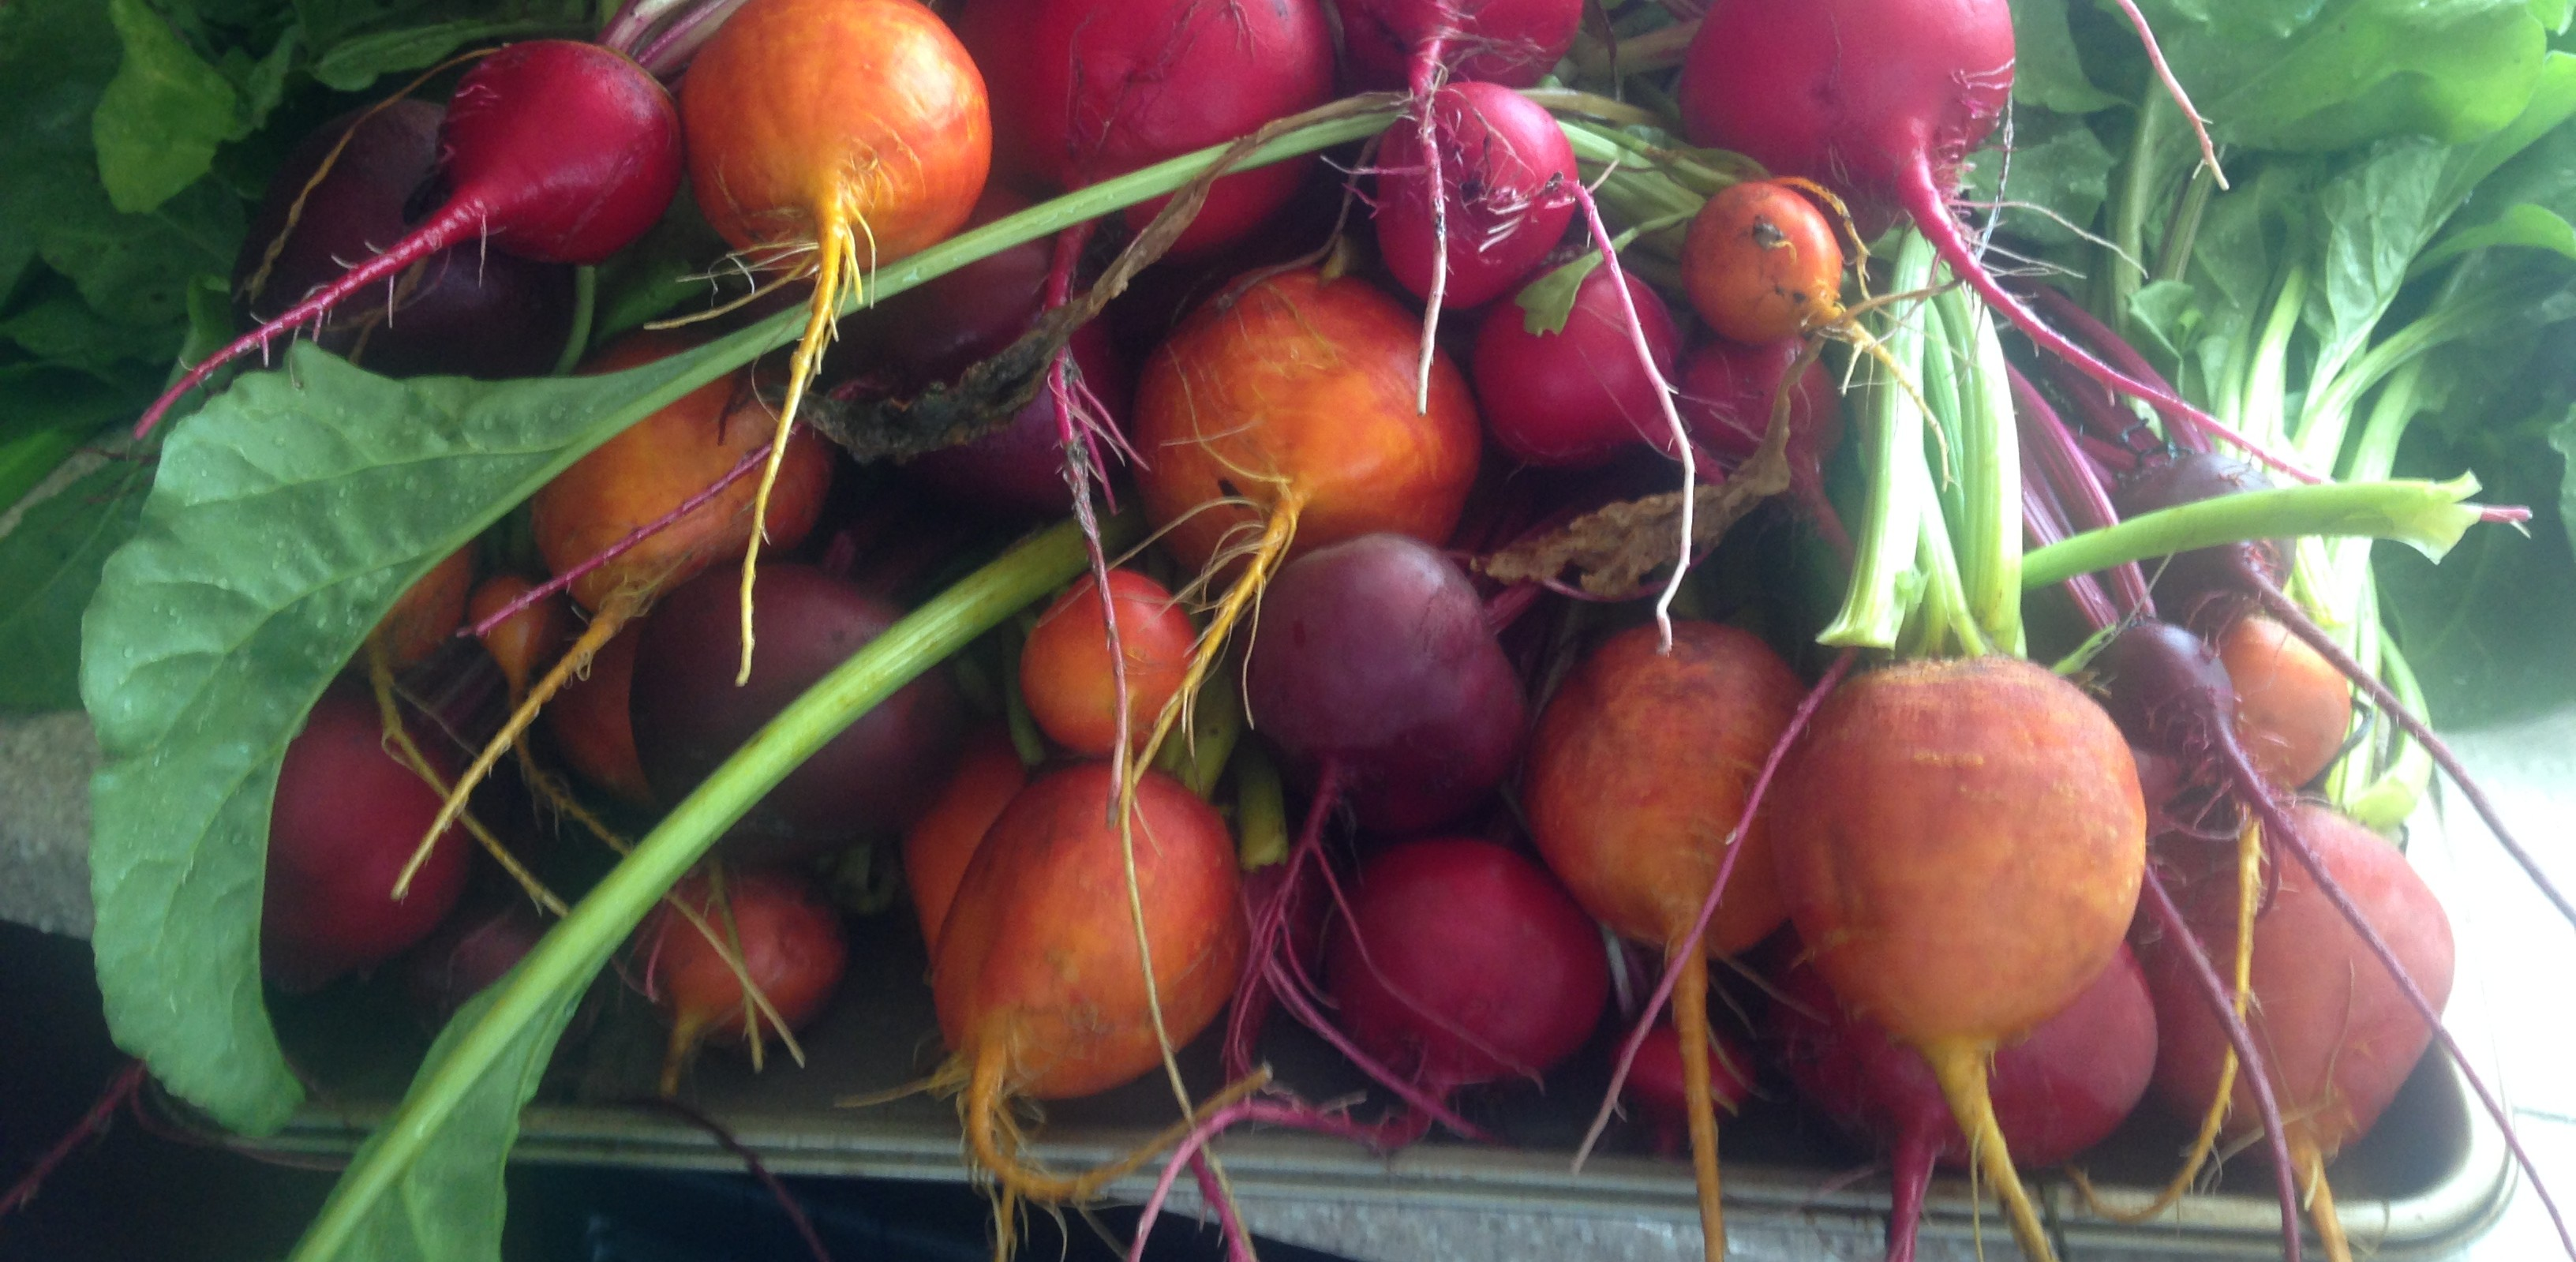 beets, garden, gardening, vegetable